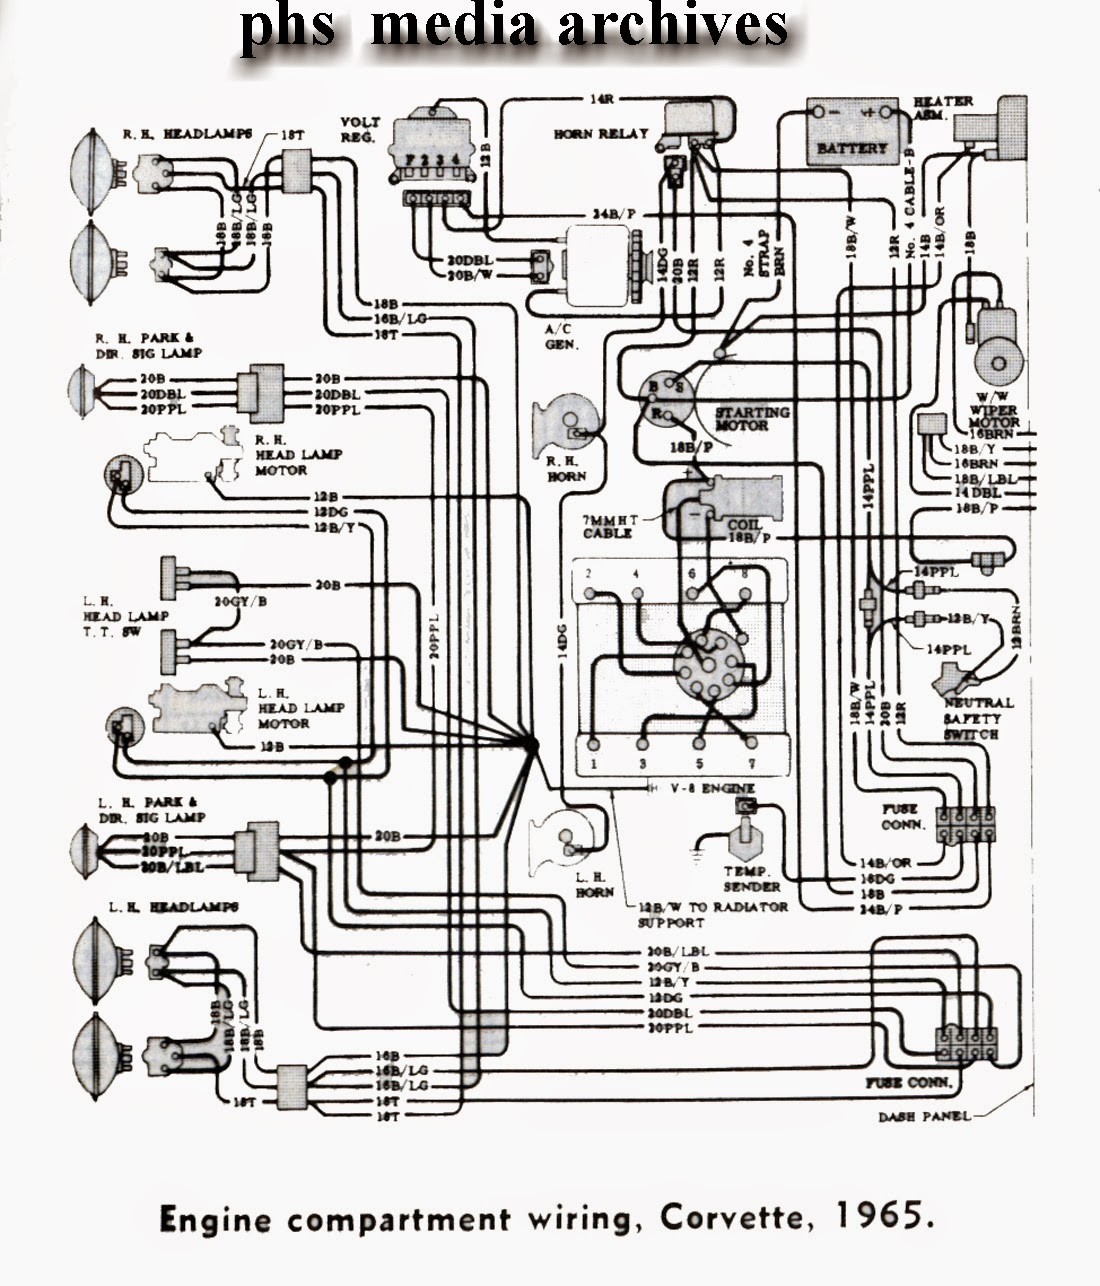 ls1 engine wiring harnes diagram click the image to [ 1100 x 1286 Pixel ]